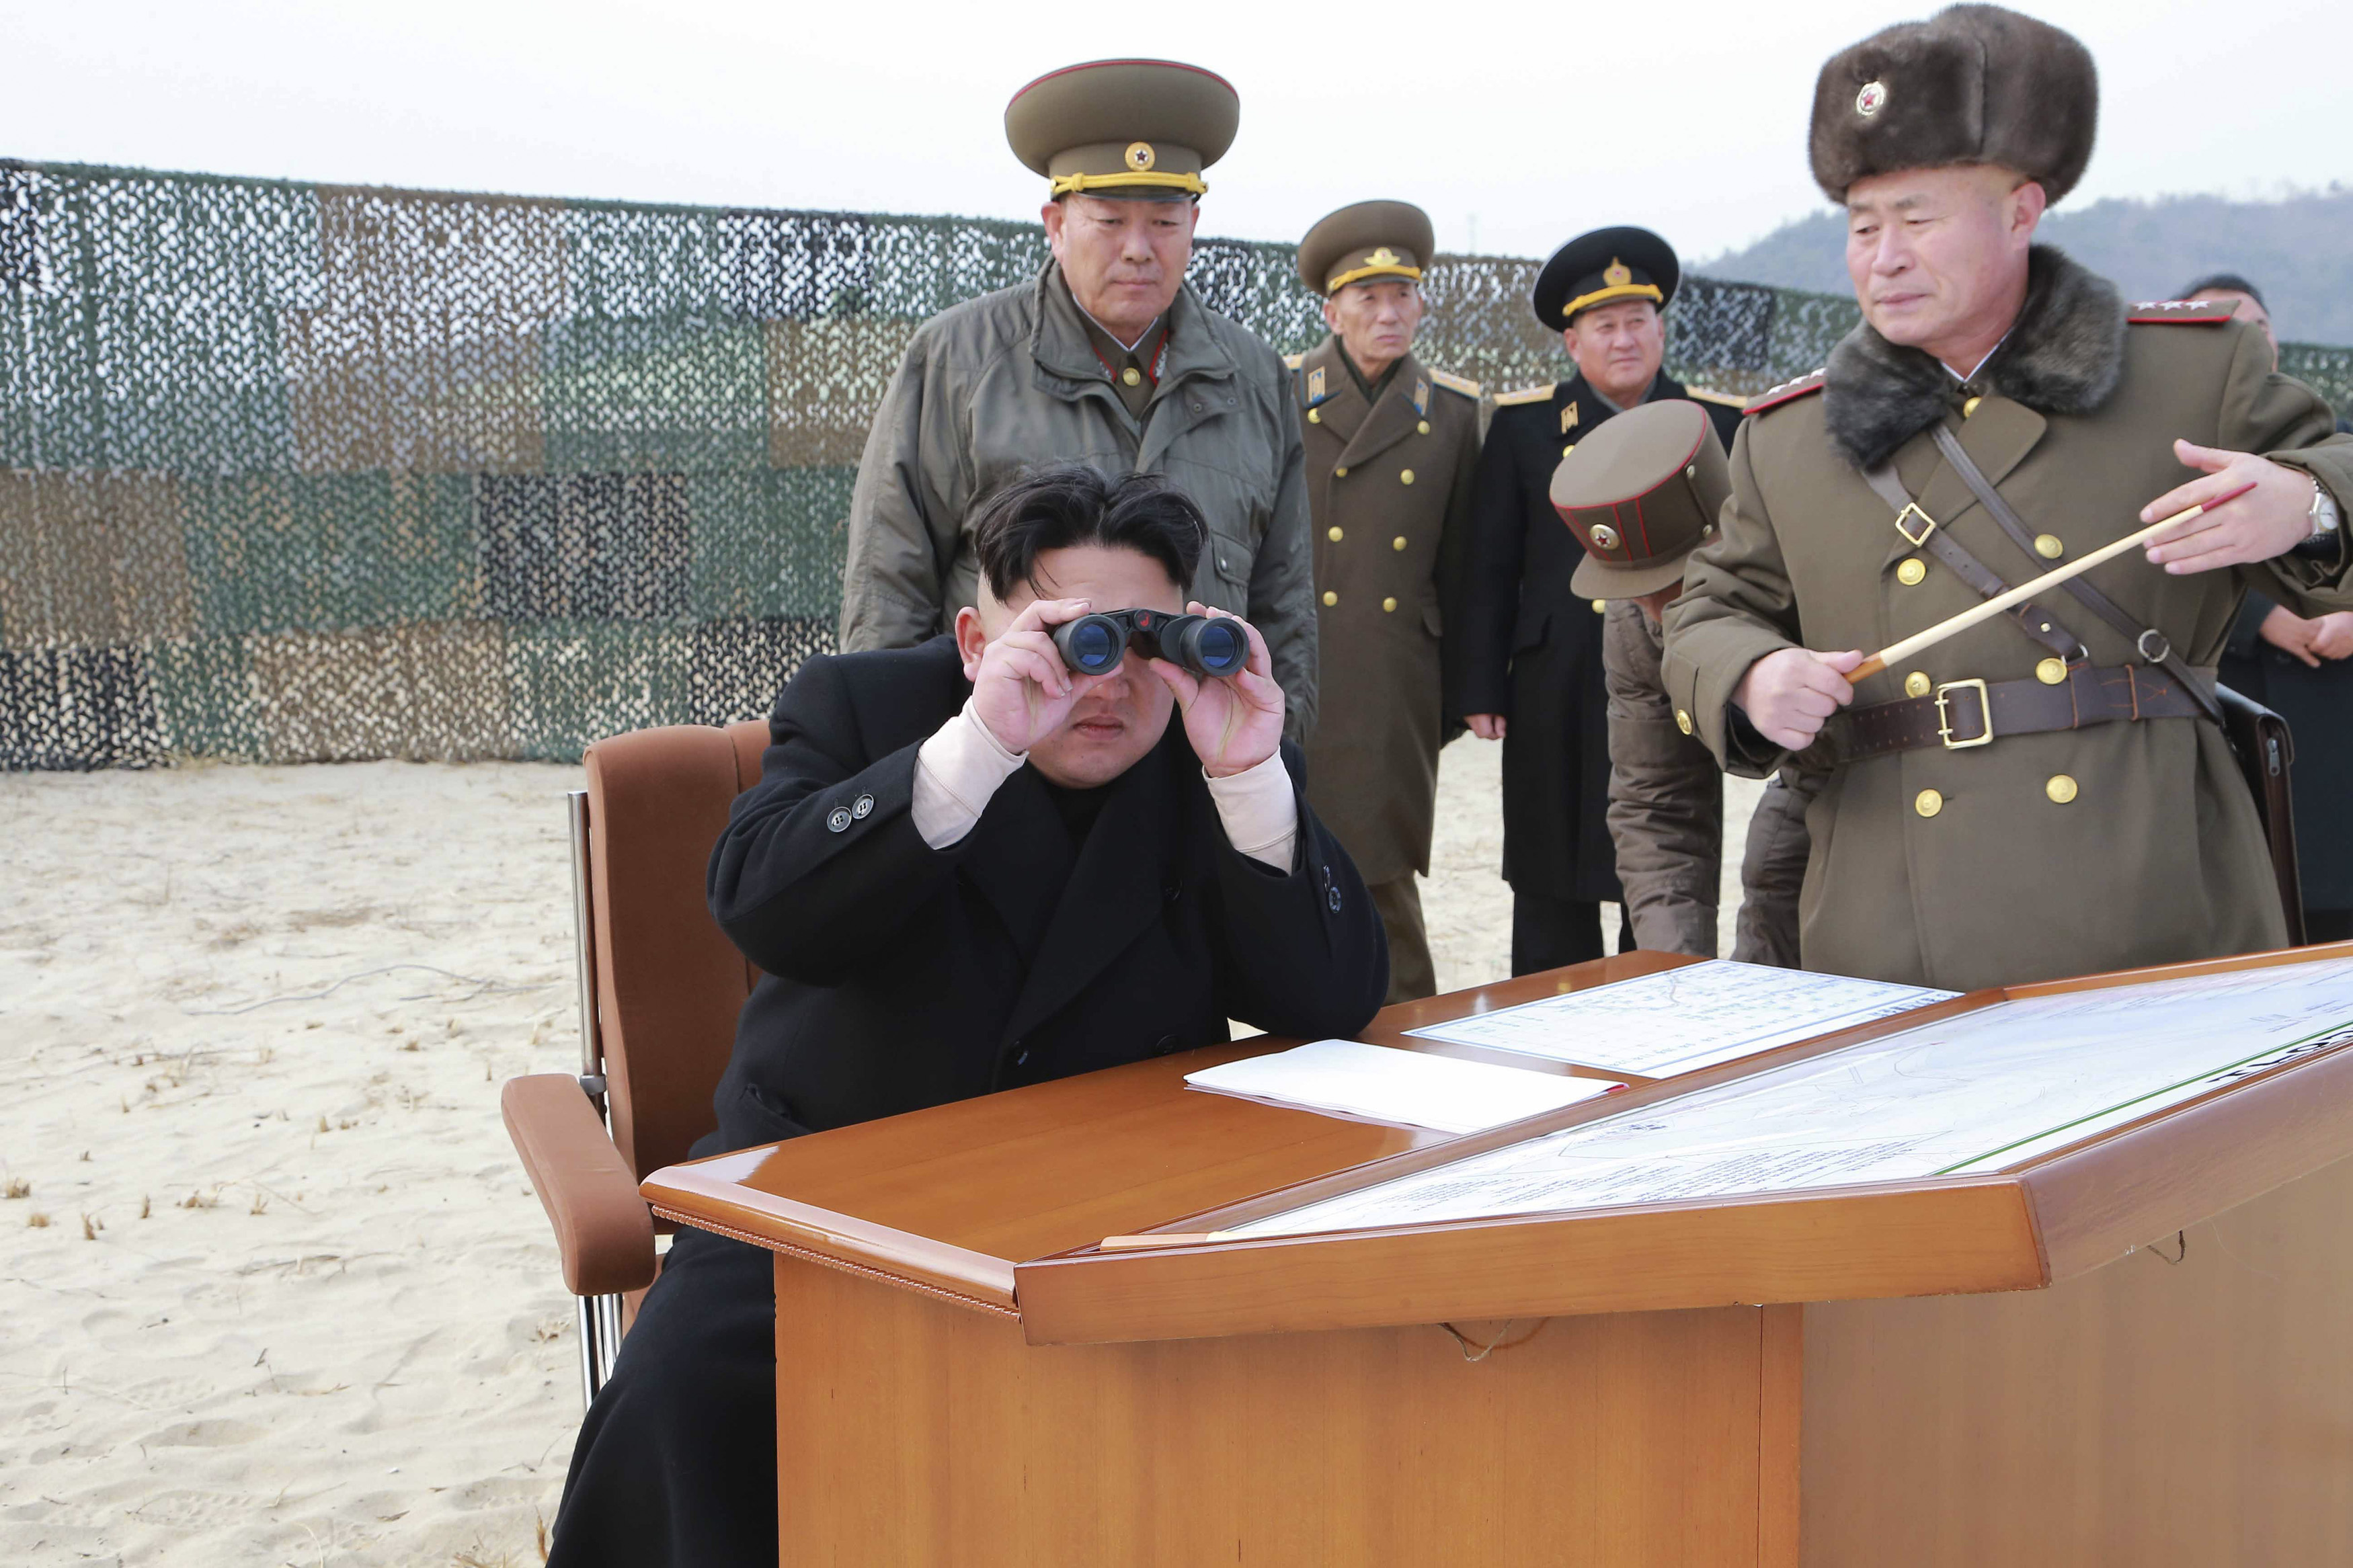 North Korean leader Kim Jong Un looks through a pair of binoculars as he guides the multiple-rocket launching drill of women's sub-units under KPA Unit 851, in Pyongyang in this undated photo released on Dec. 30, 2014.